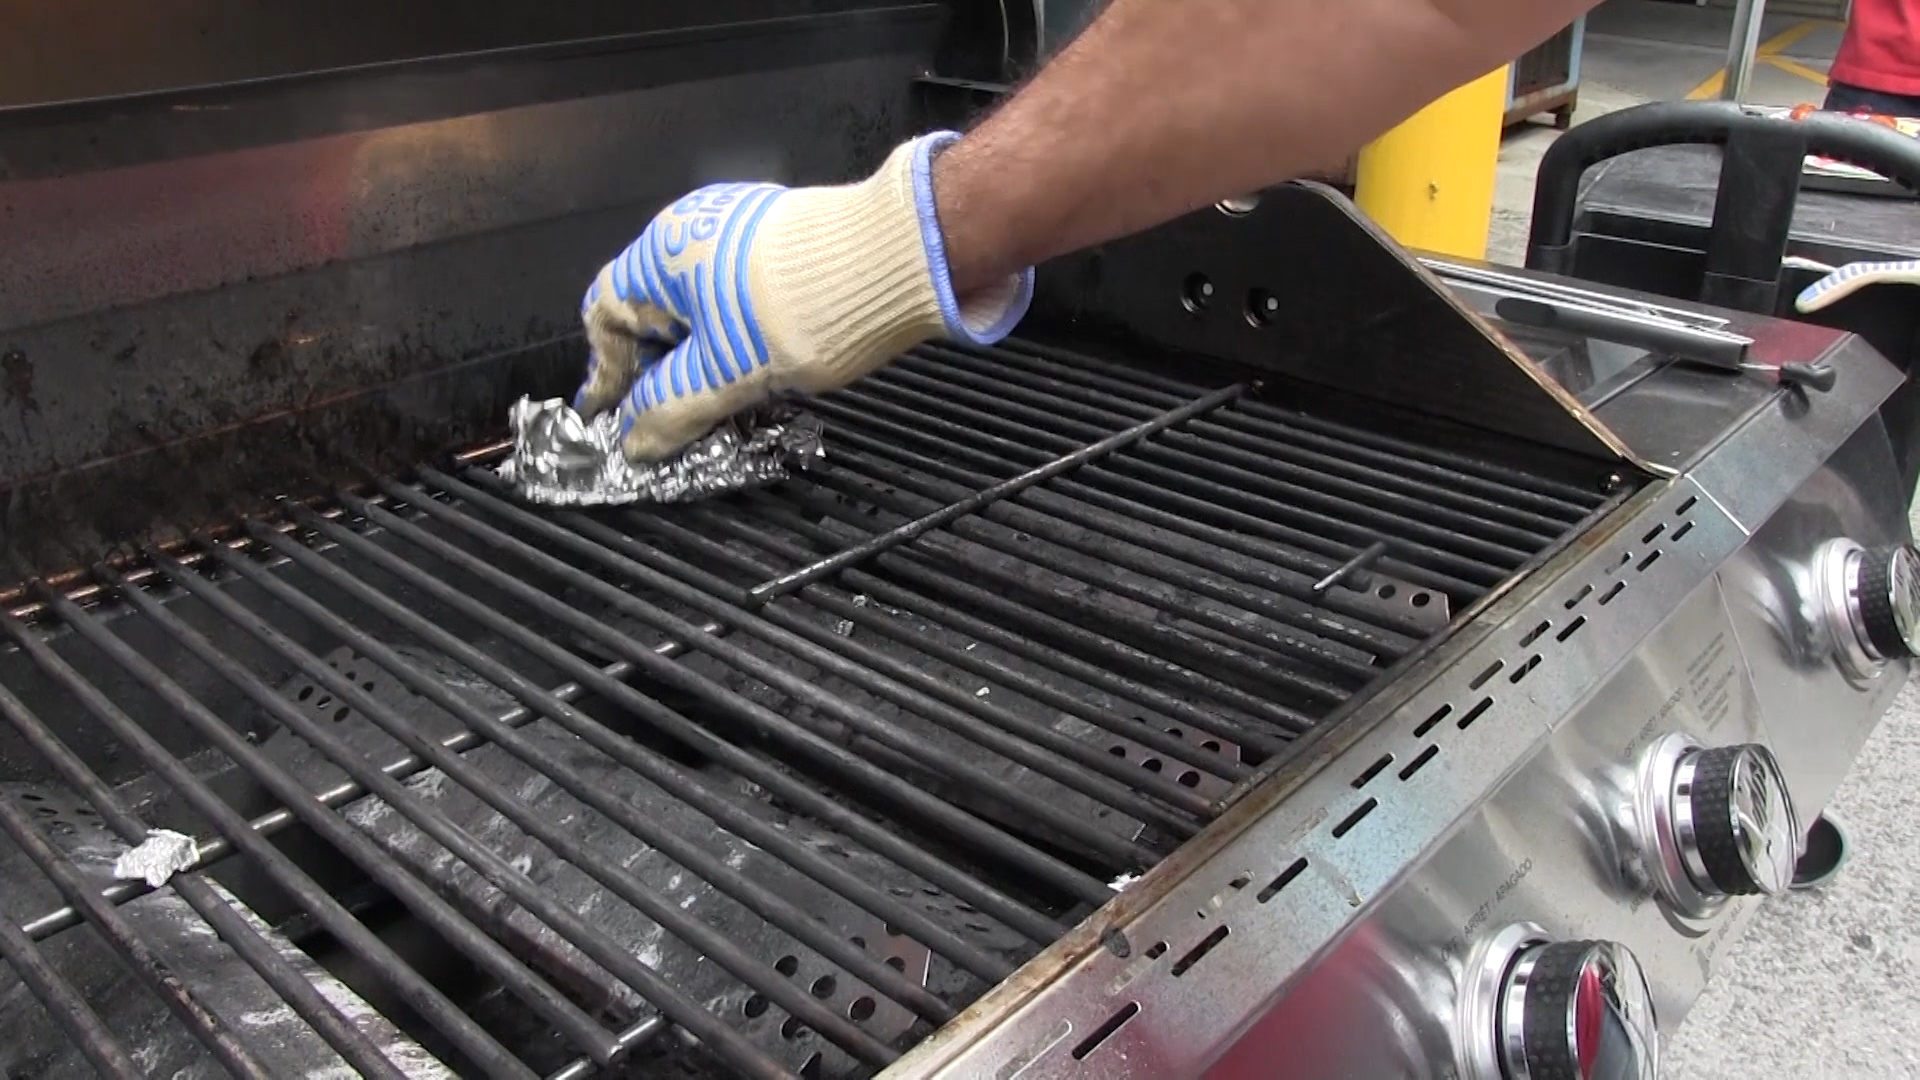 Guard Against Wire Grill Brush Dangers - Consumer Reports